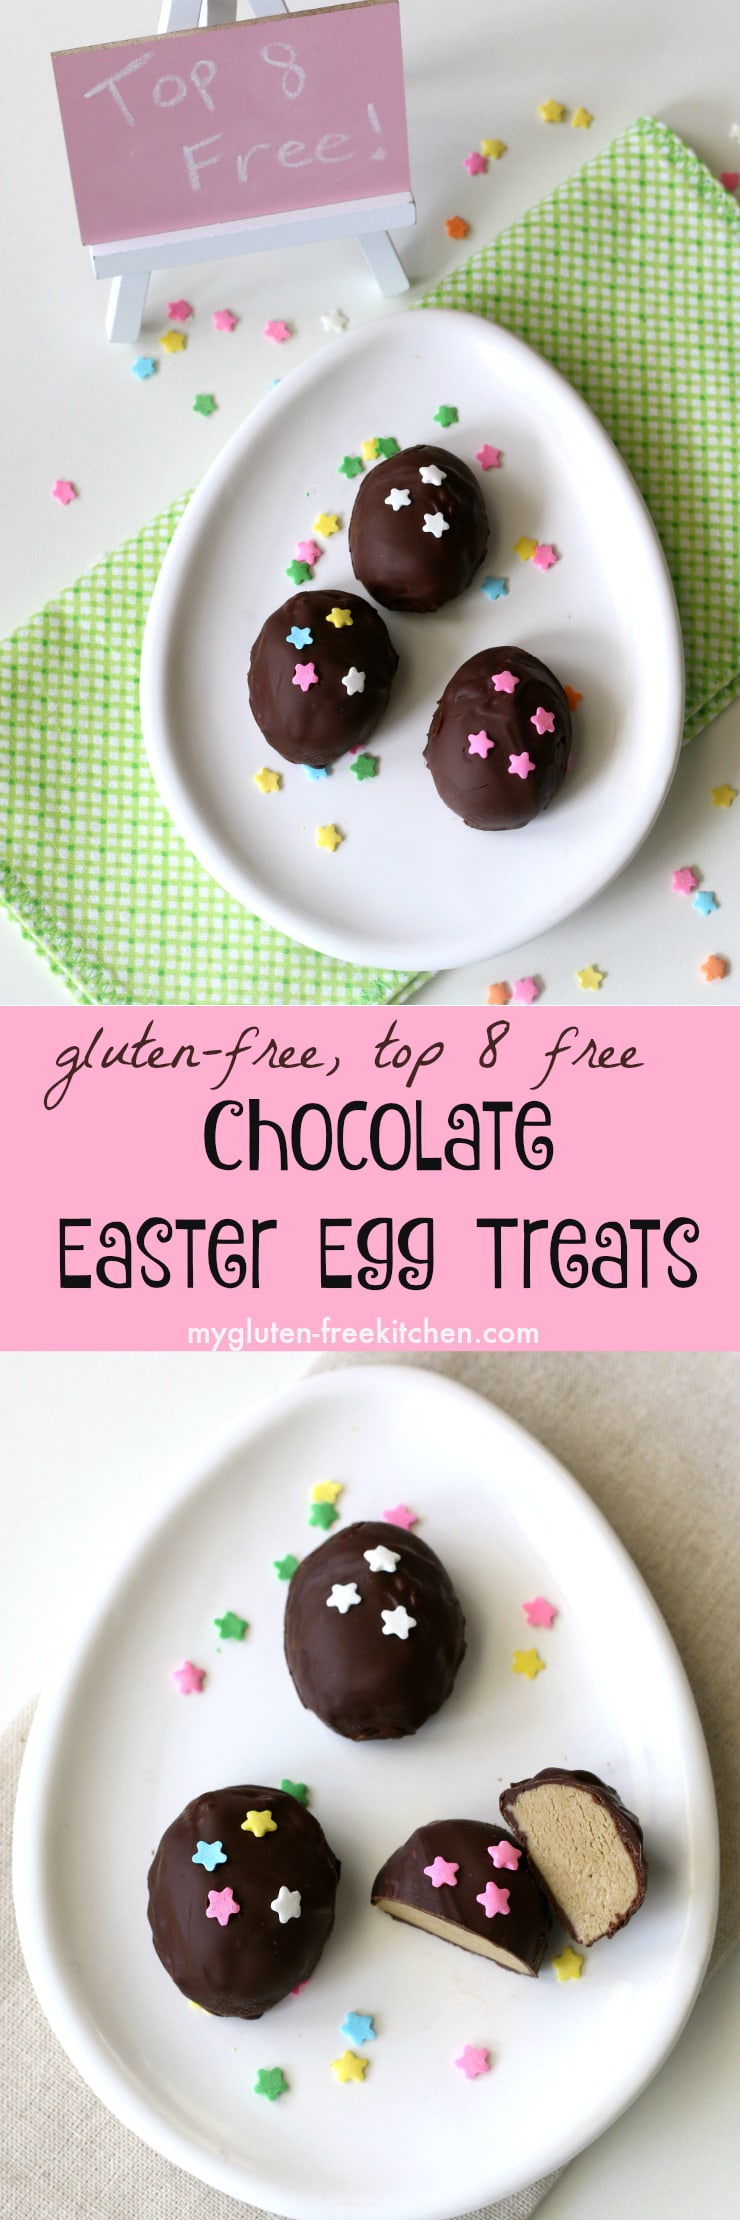 Gluten-free Top 8 free Chocolate Easter Egg Treats recipe. Perfect for class parties or to make with your kids!